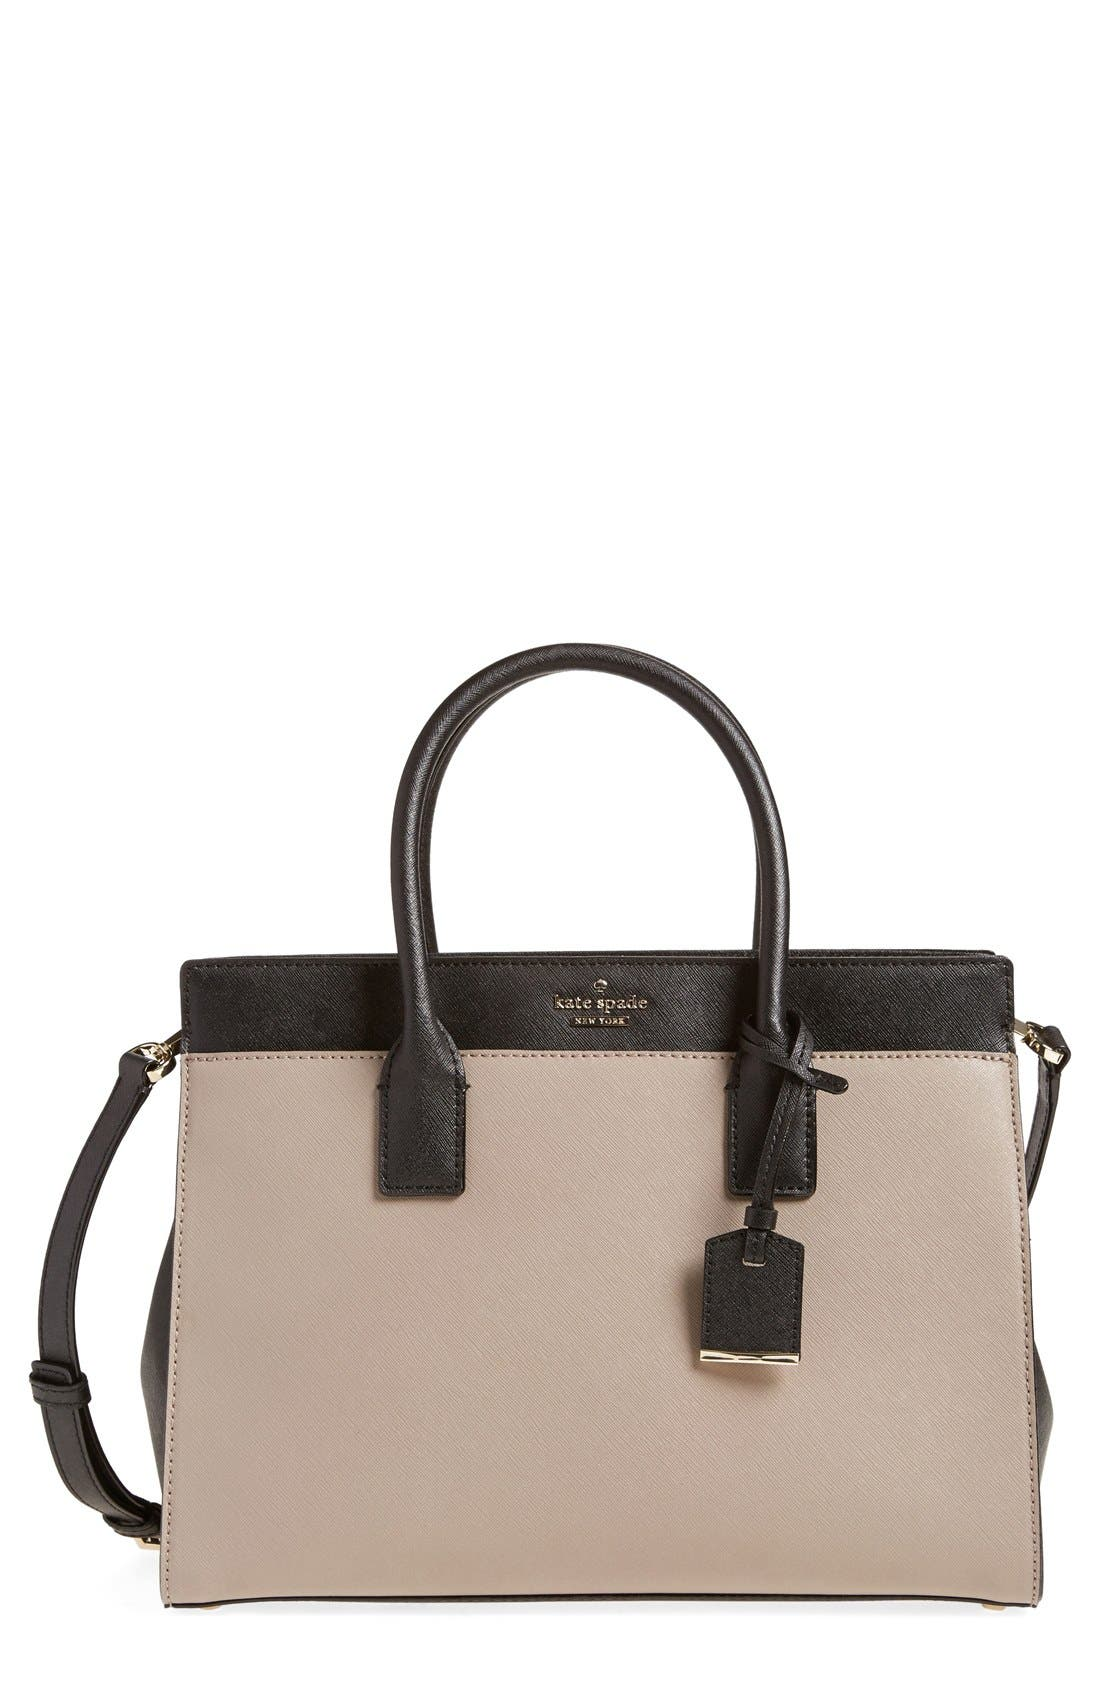 cameron street - candace leather satchel,                             Main thumbnail 9, color,